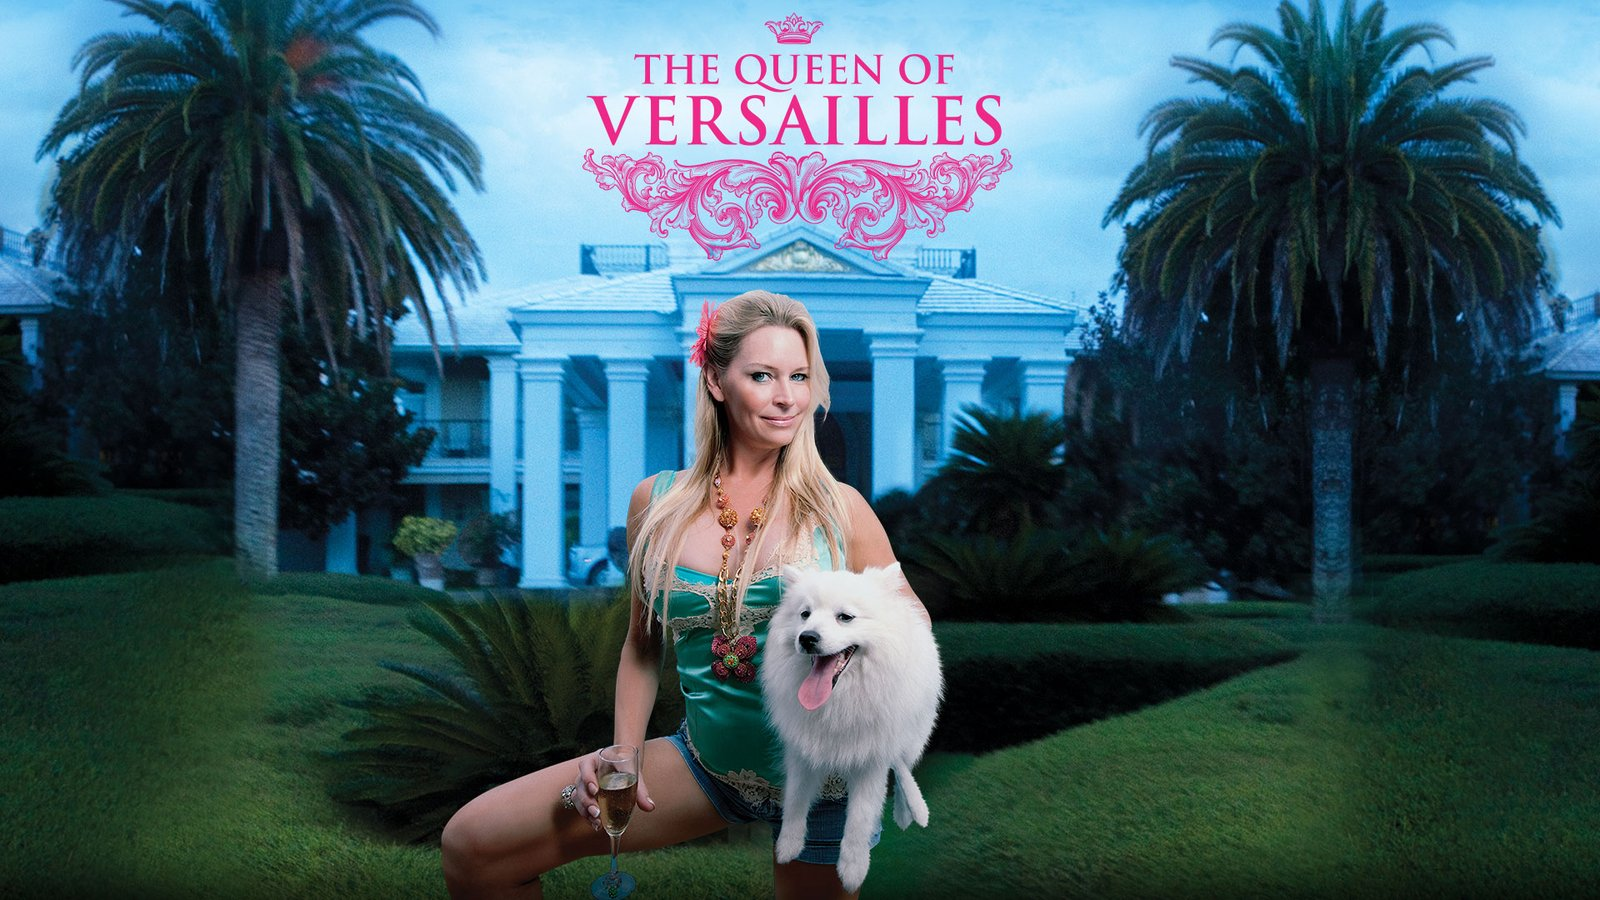 The Queen of Versailles - A Billionaire Family and the Economic Crisis